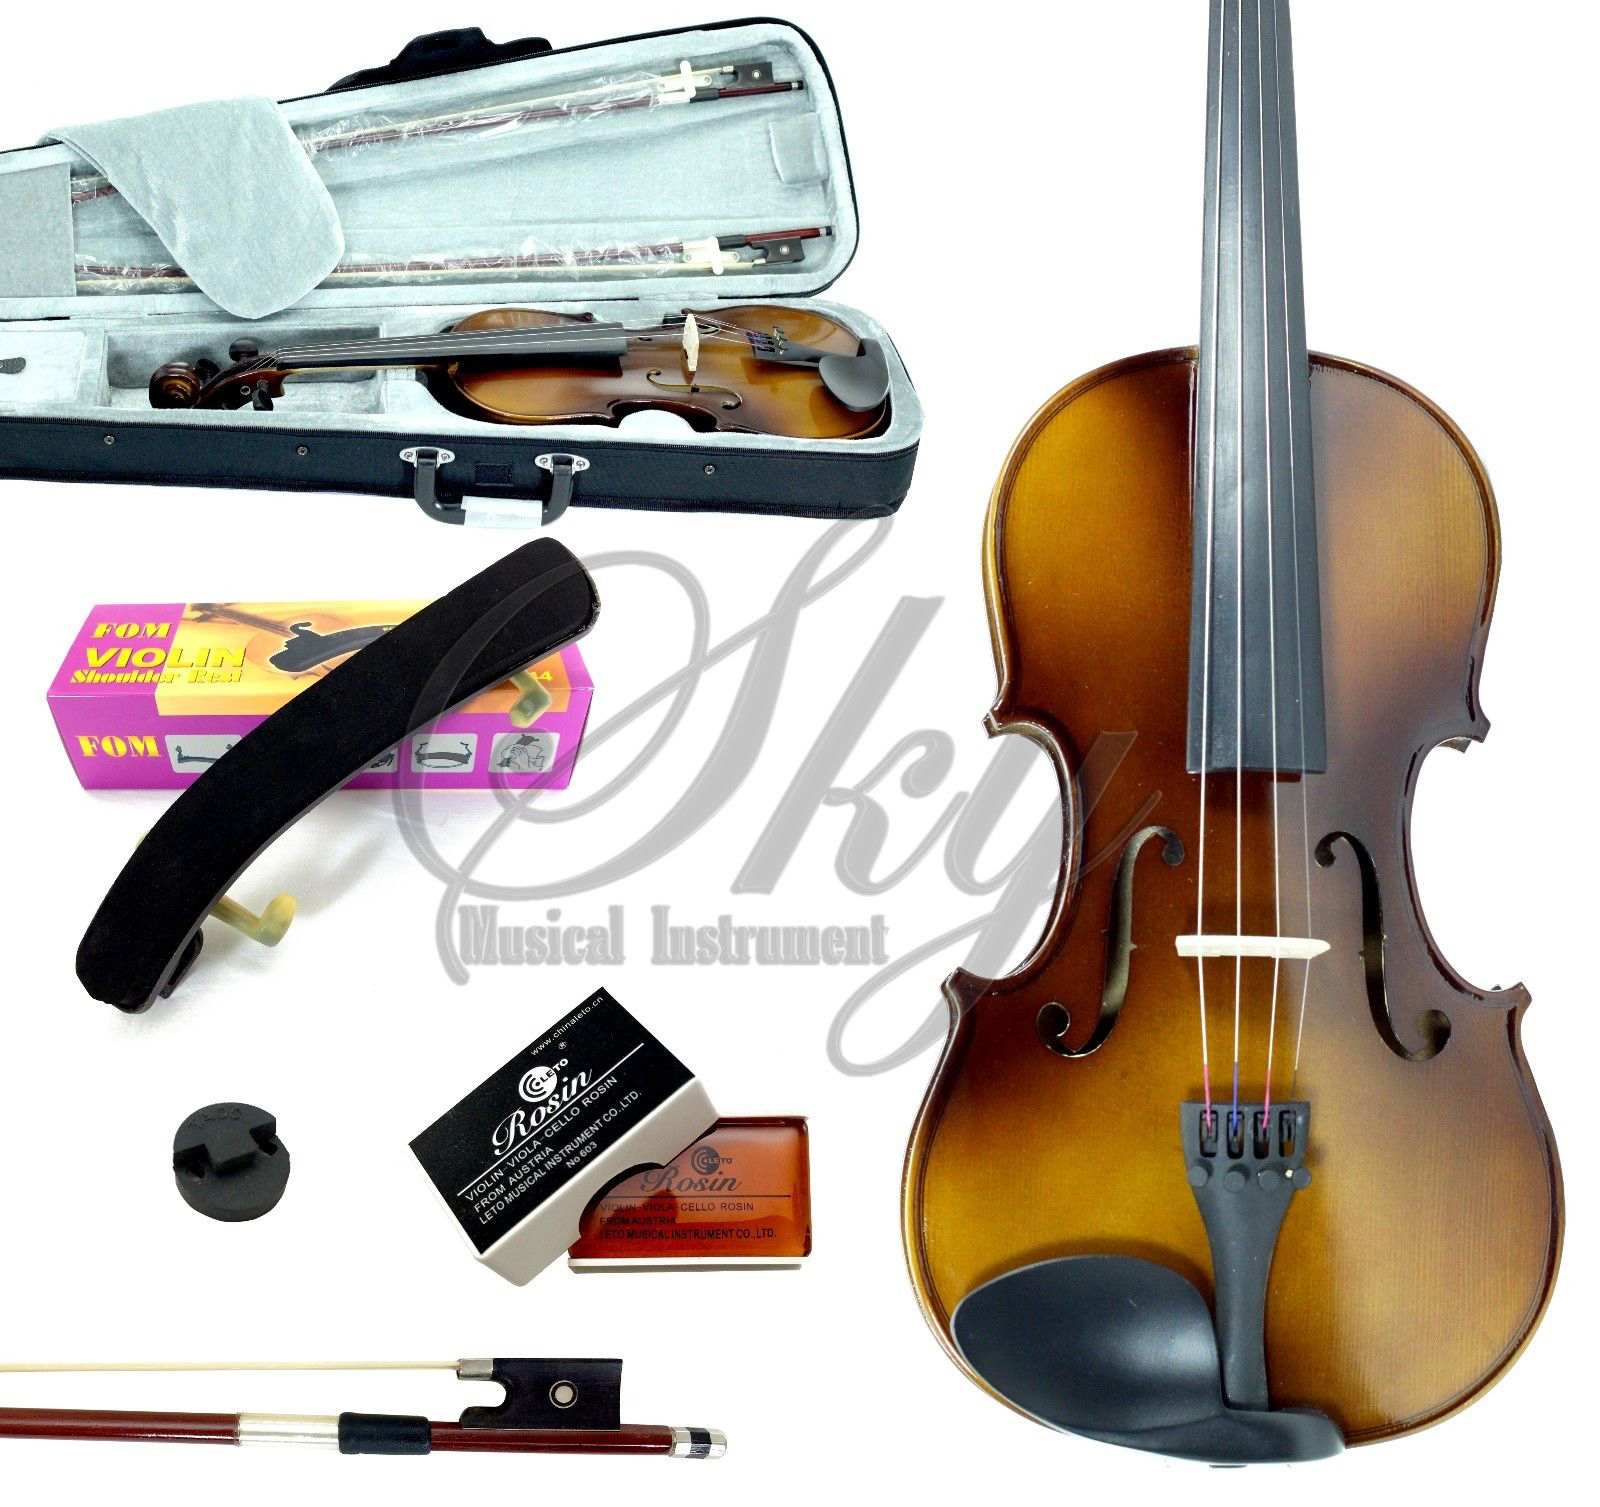 Sky High Quality Sound 1/2 Size Student Beginner Violin Fiddle Outfit with Light Weight Hard Case, Brazilian Wood Bow, and Mute